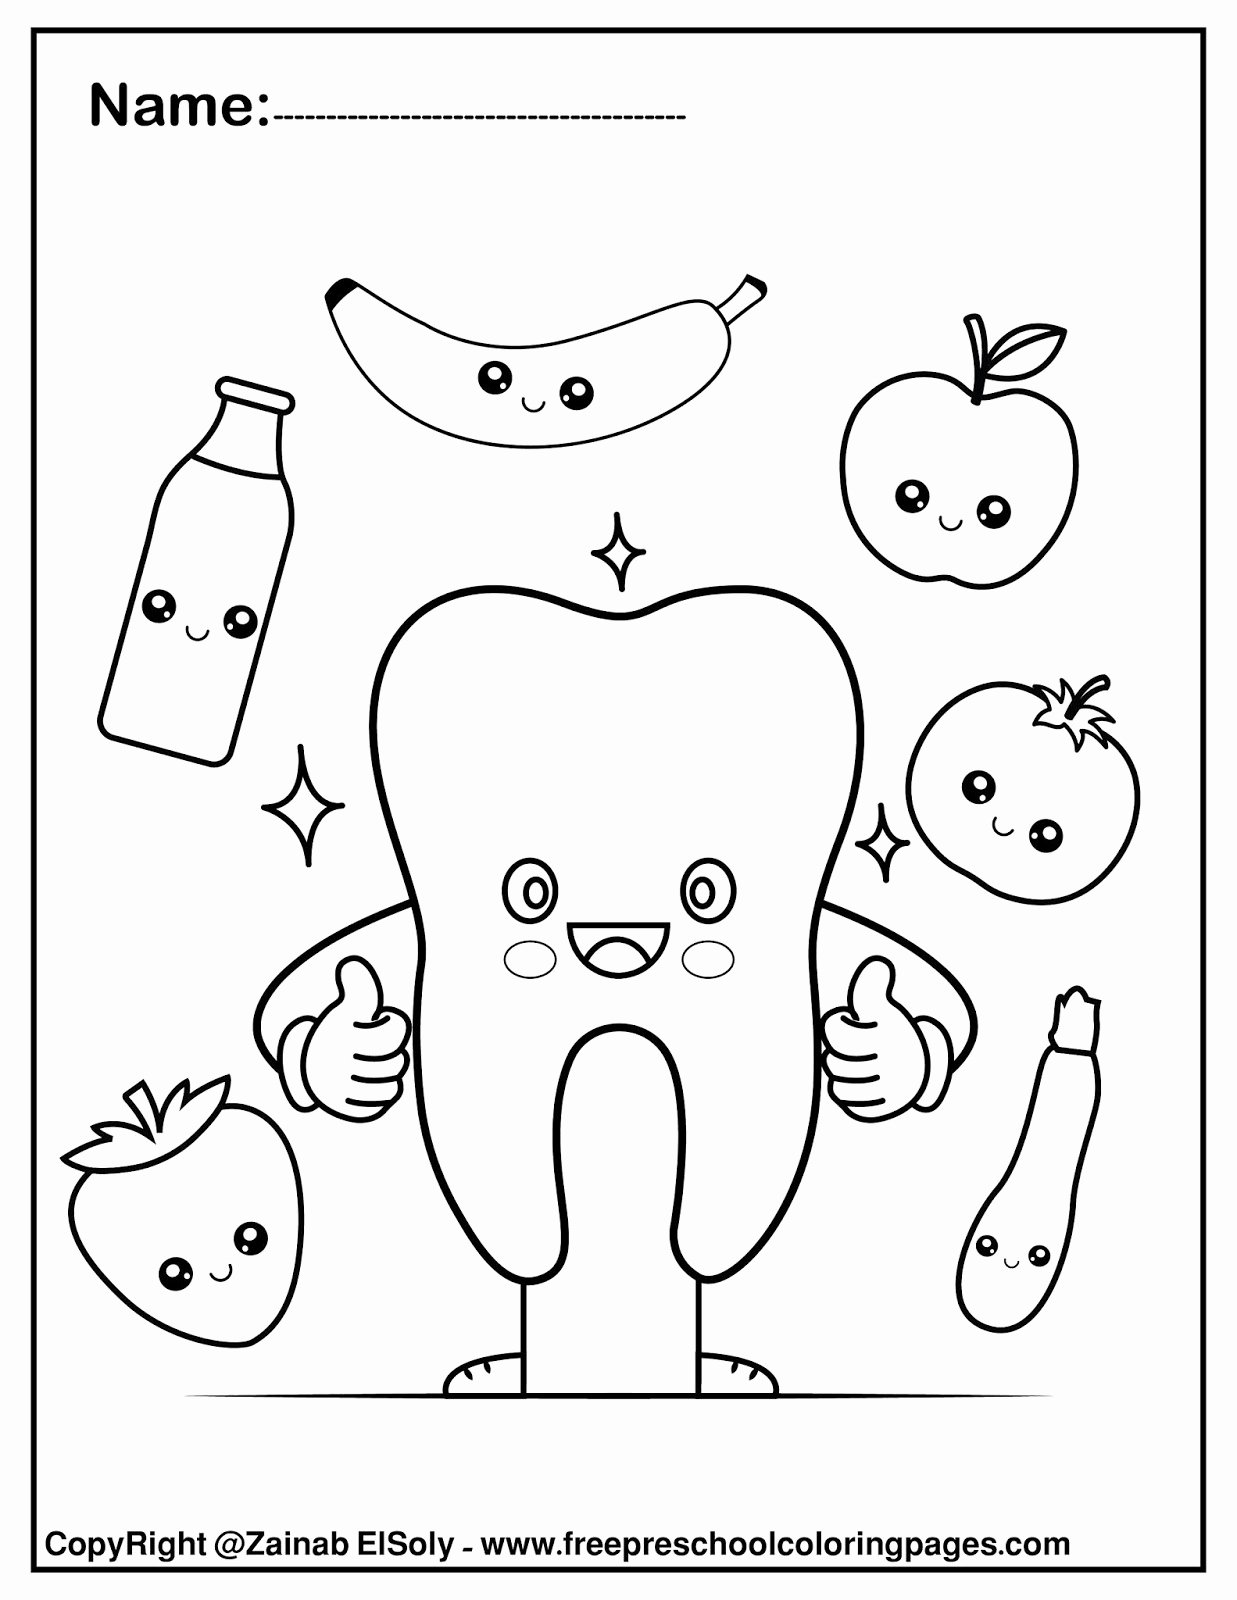 Dental Worksheets for Preschoolers Best Of Dental Coloring for Preschool Hygiene Worksheets Set Free